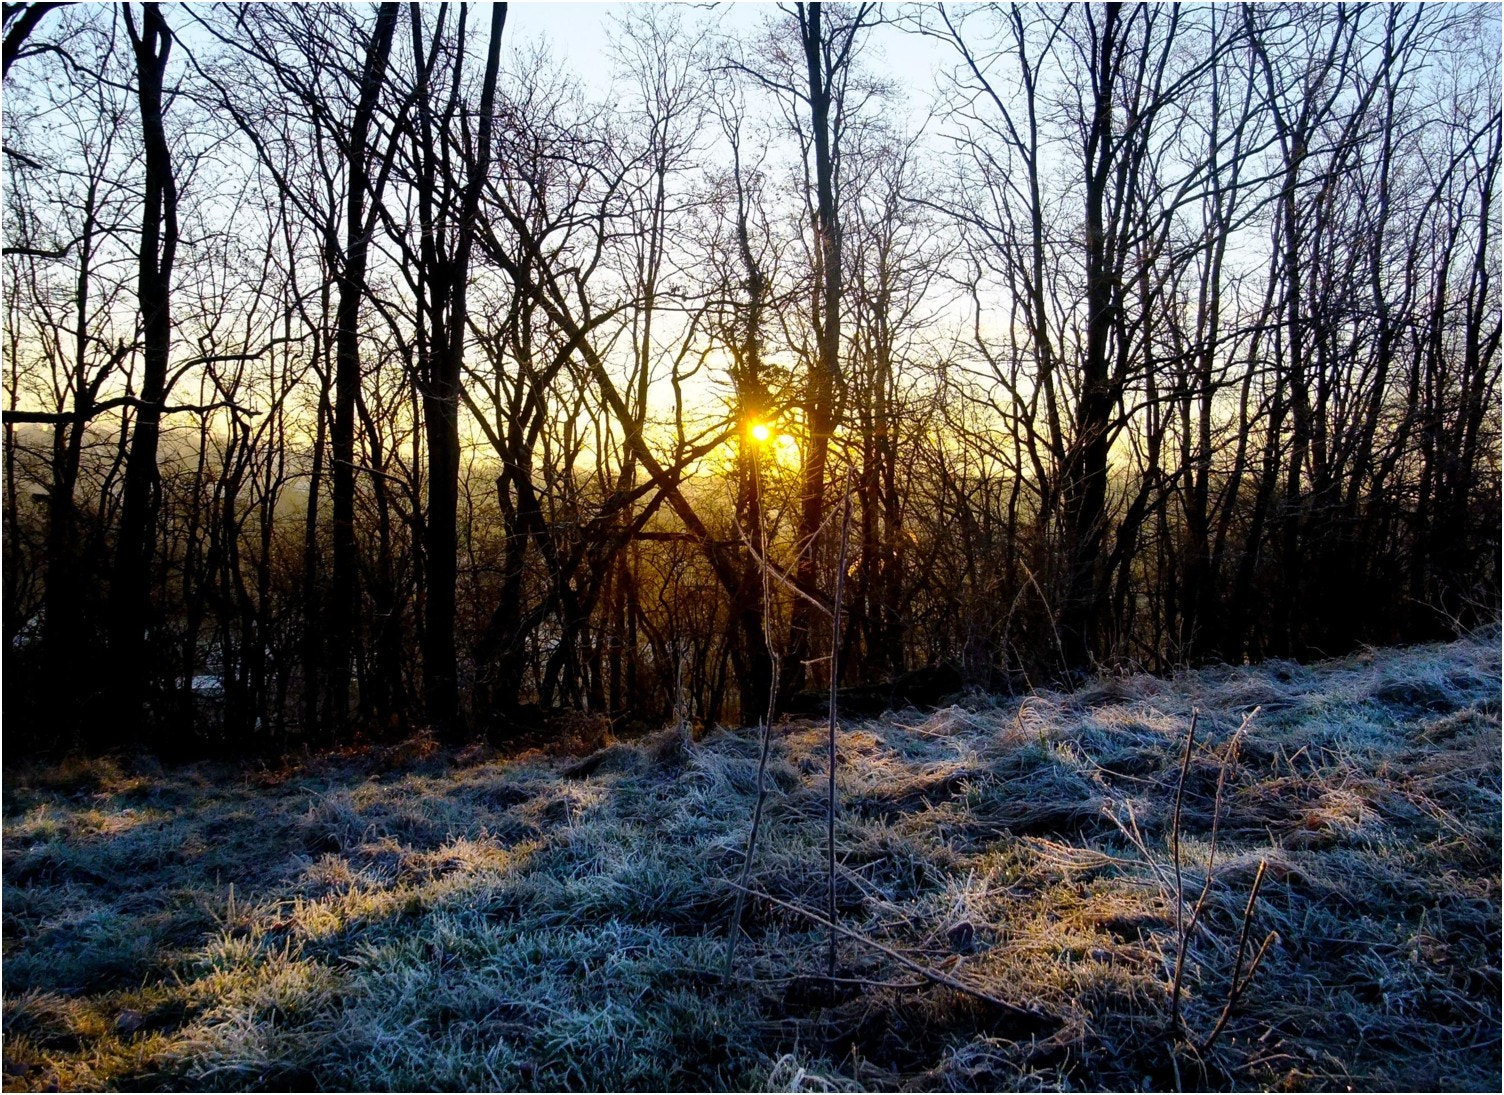 Photograph cold morning by Ulrich Fleischer on 500px